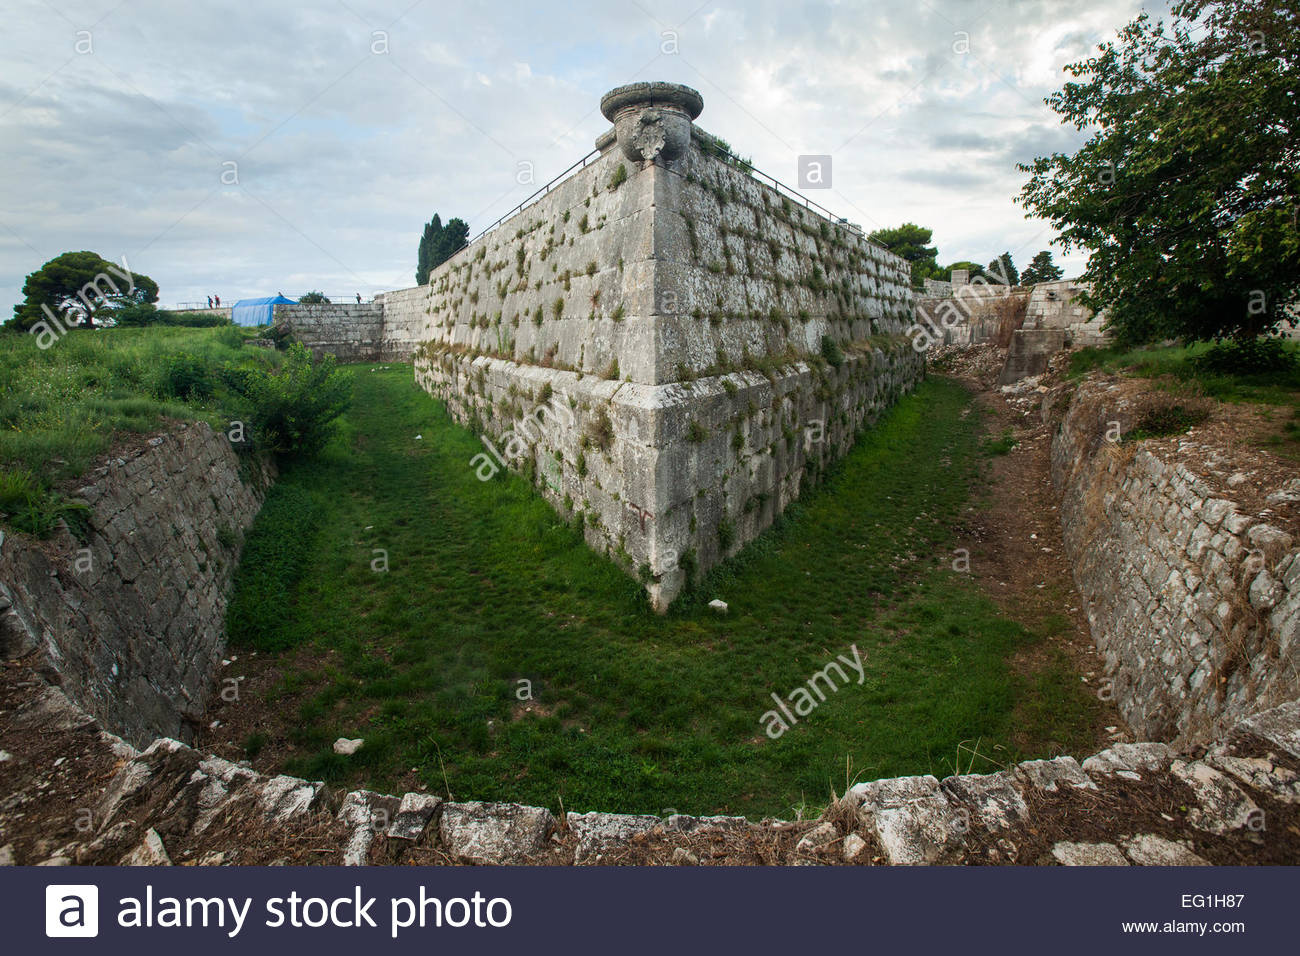 Croatian fortress in Pula - Stock Image